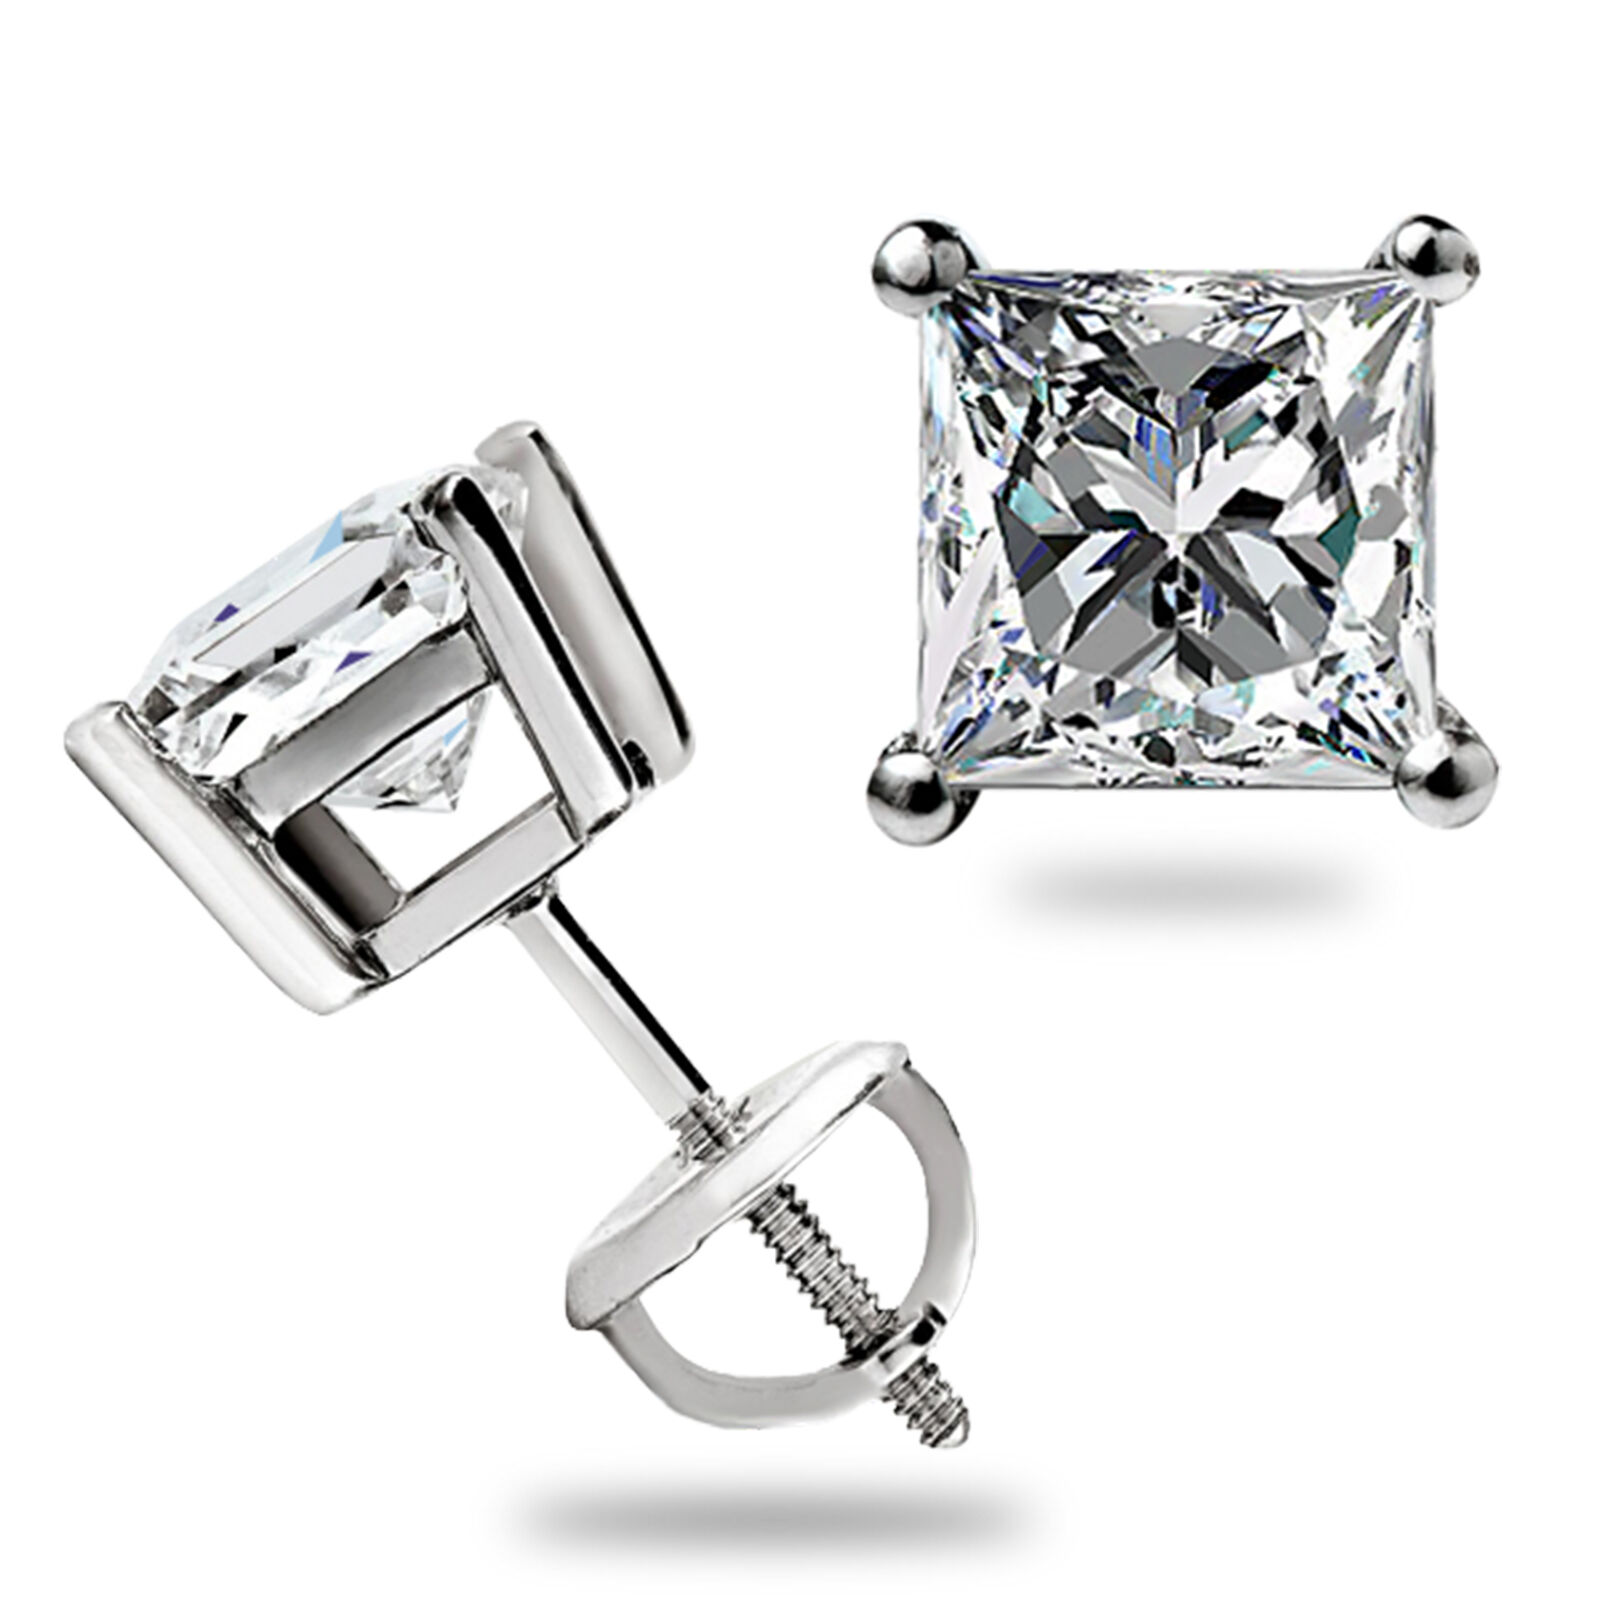 2 ct princess cut solitaire stud earrings solid 14k white. Black Bedroom Furniture Sets. Home Design Ideas